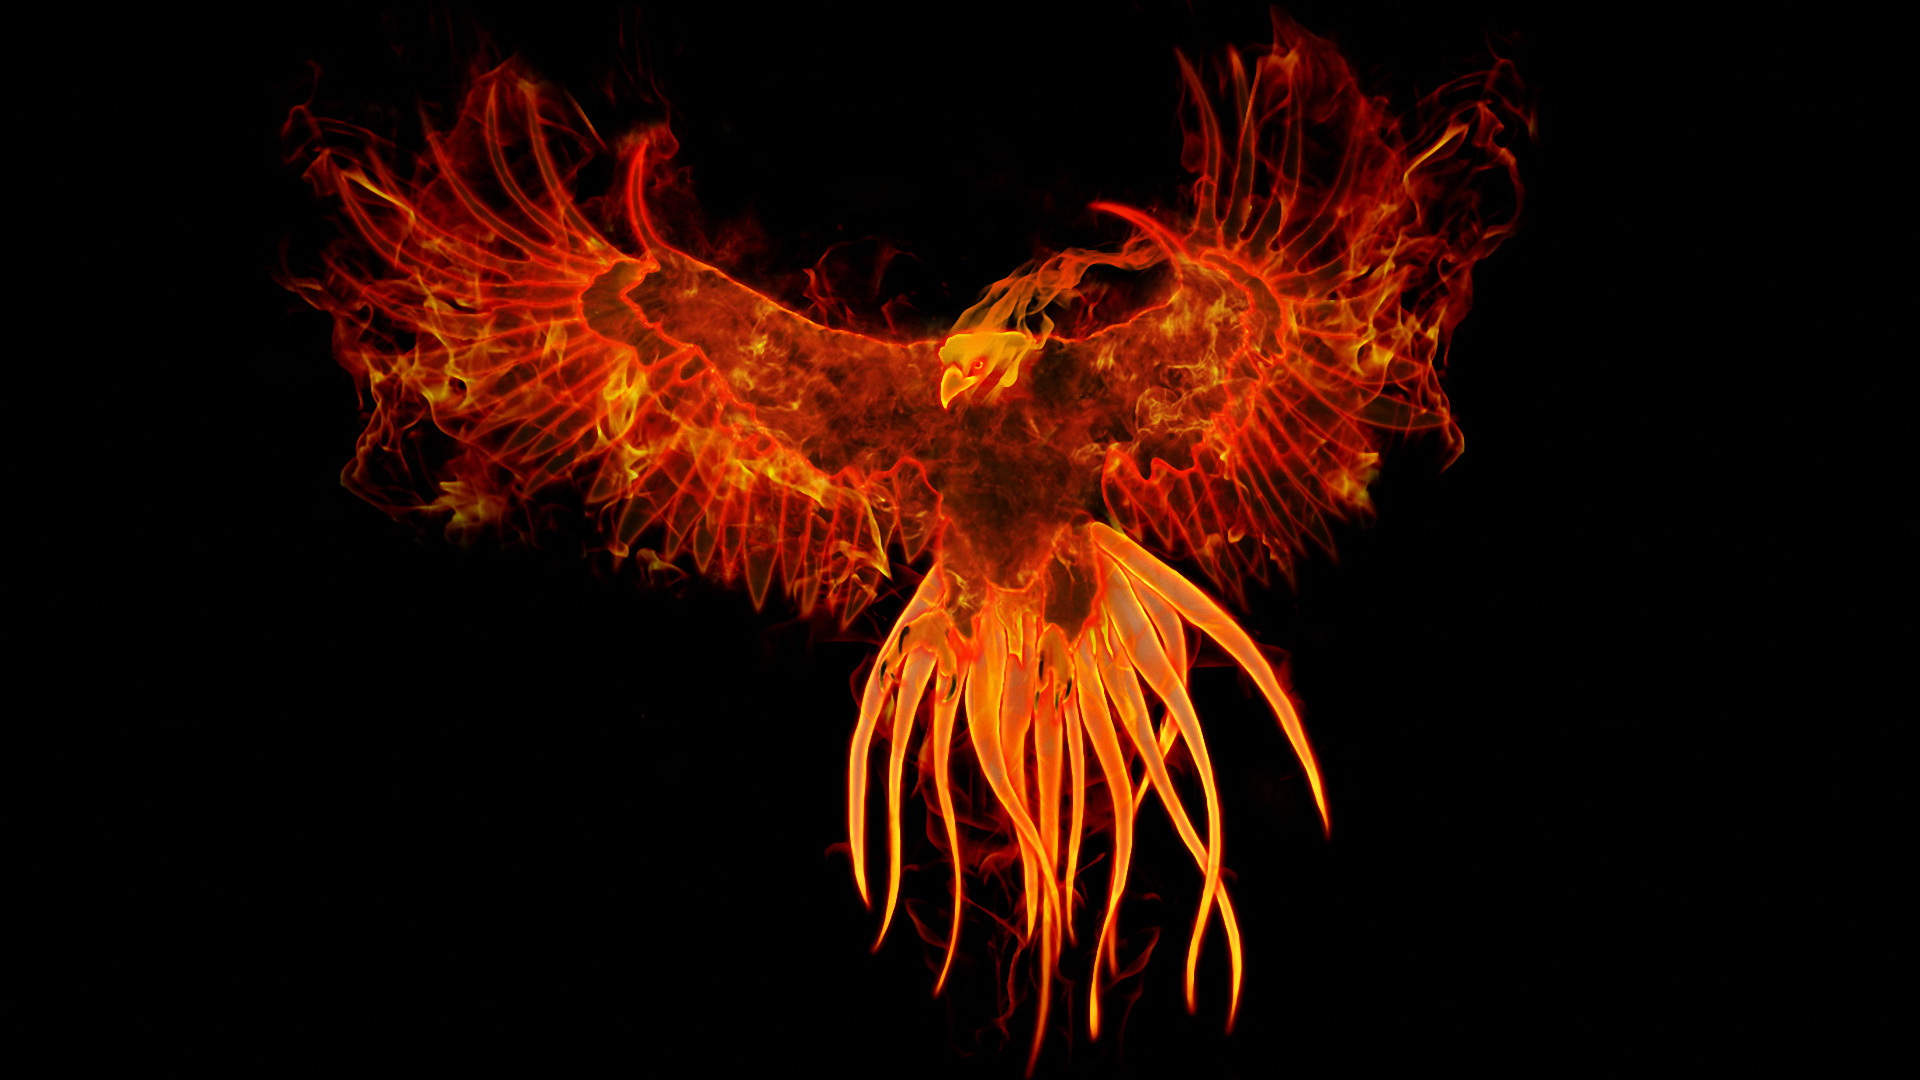 Phoenix Computer Wallpapers Desktop Backgrounds 1920x1080 ID 1920x1080